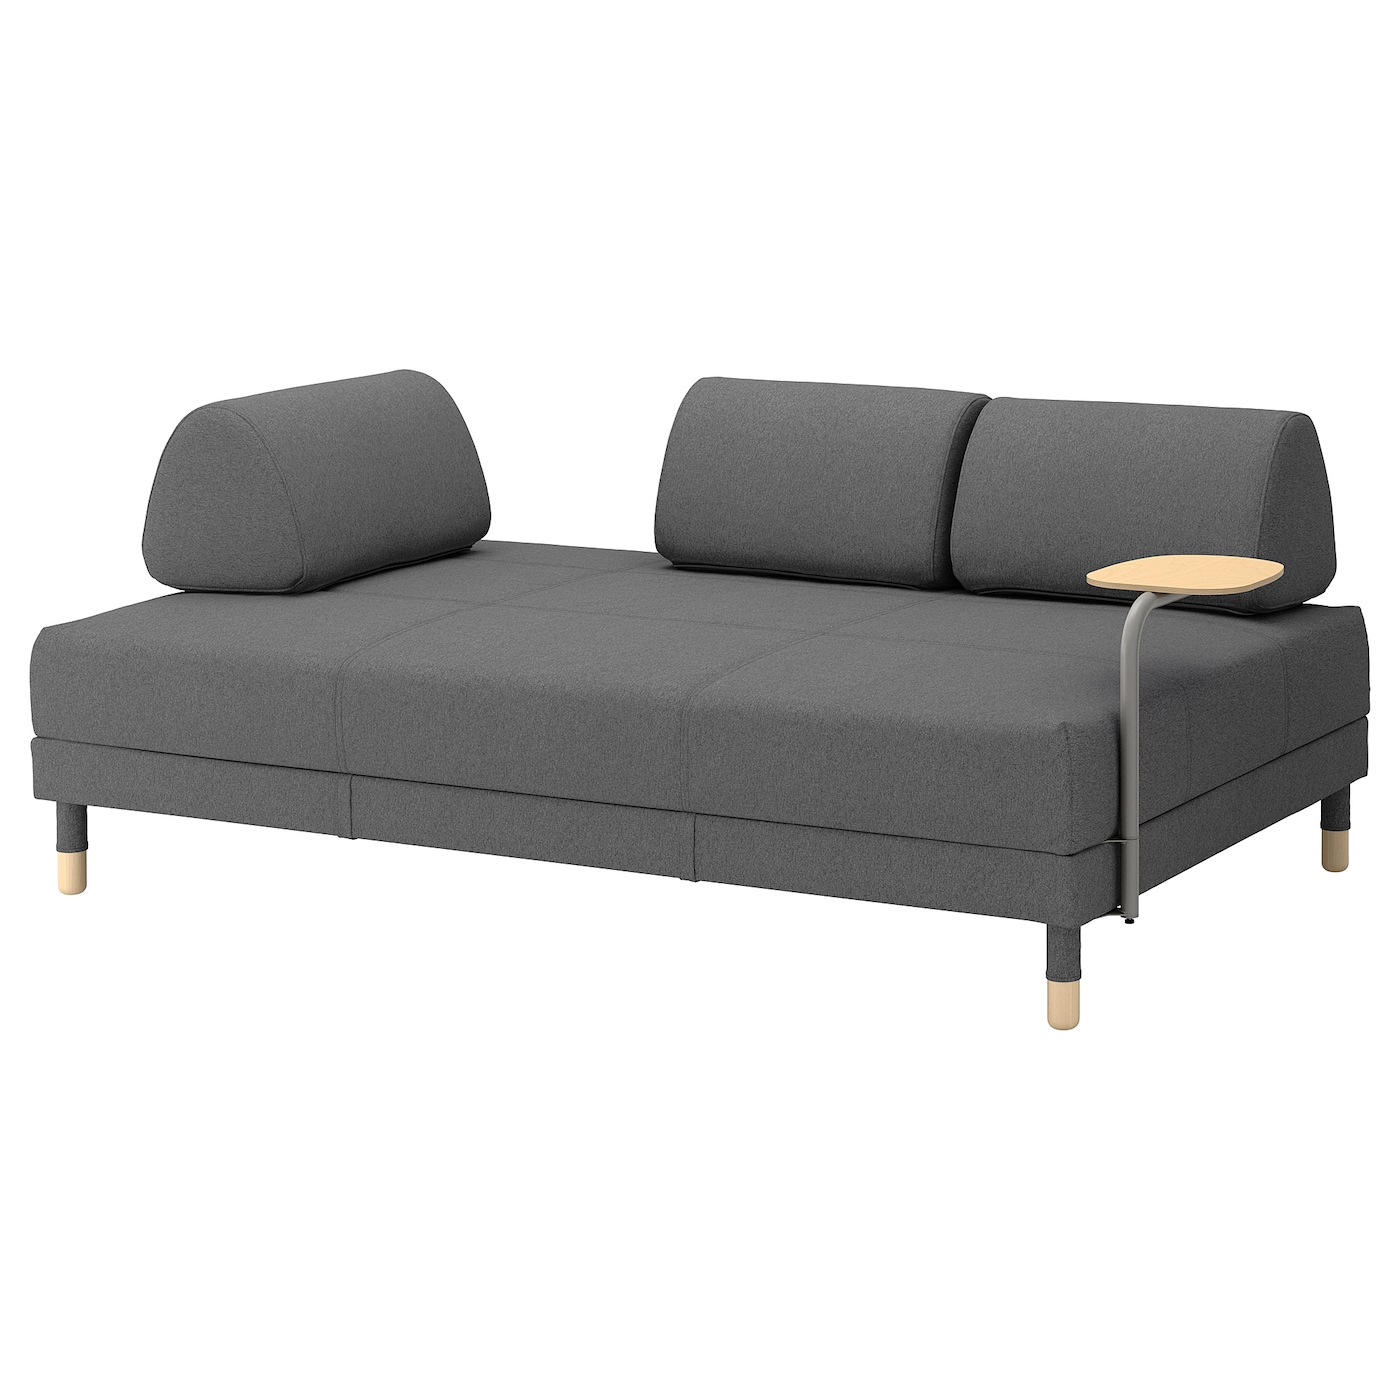 Merveilleux IKEA FLOTTEBO Sofa Bed With Side Table